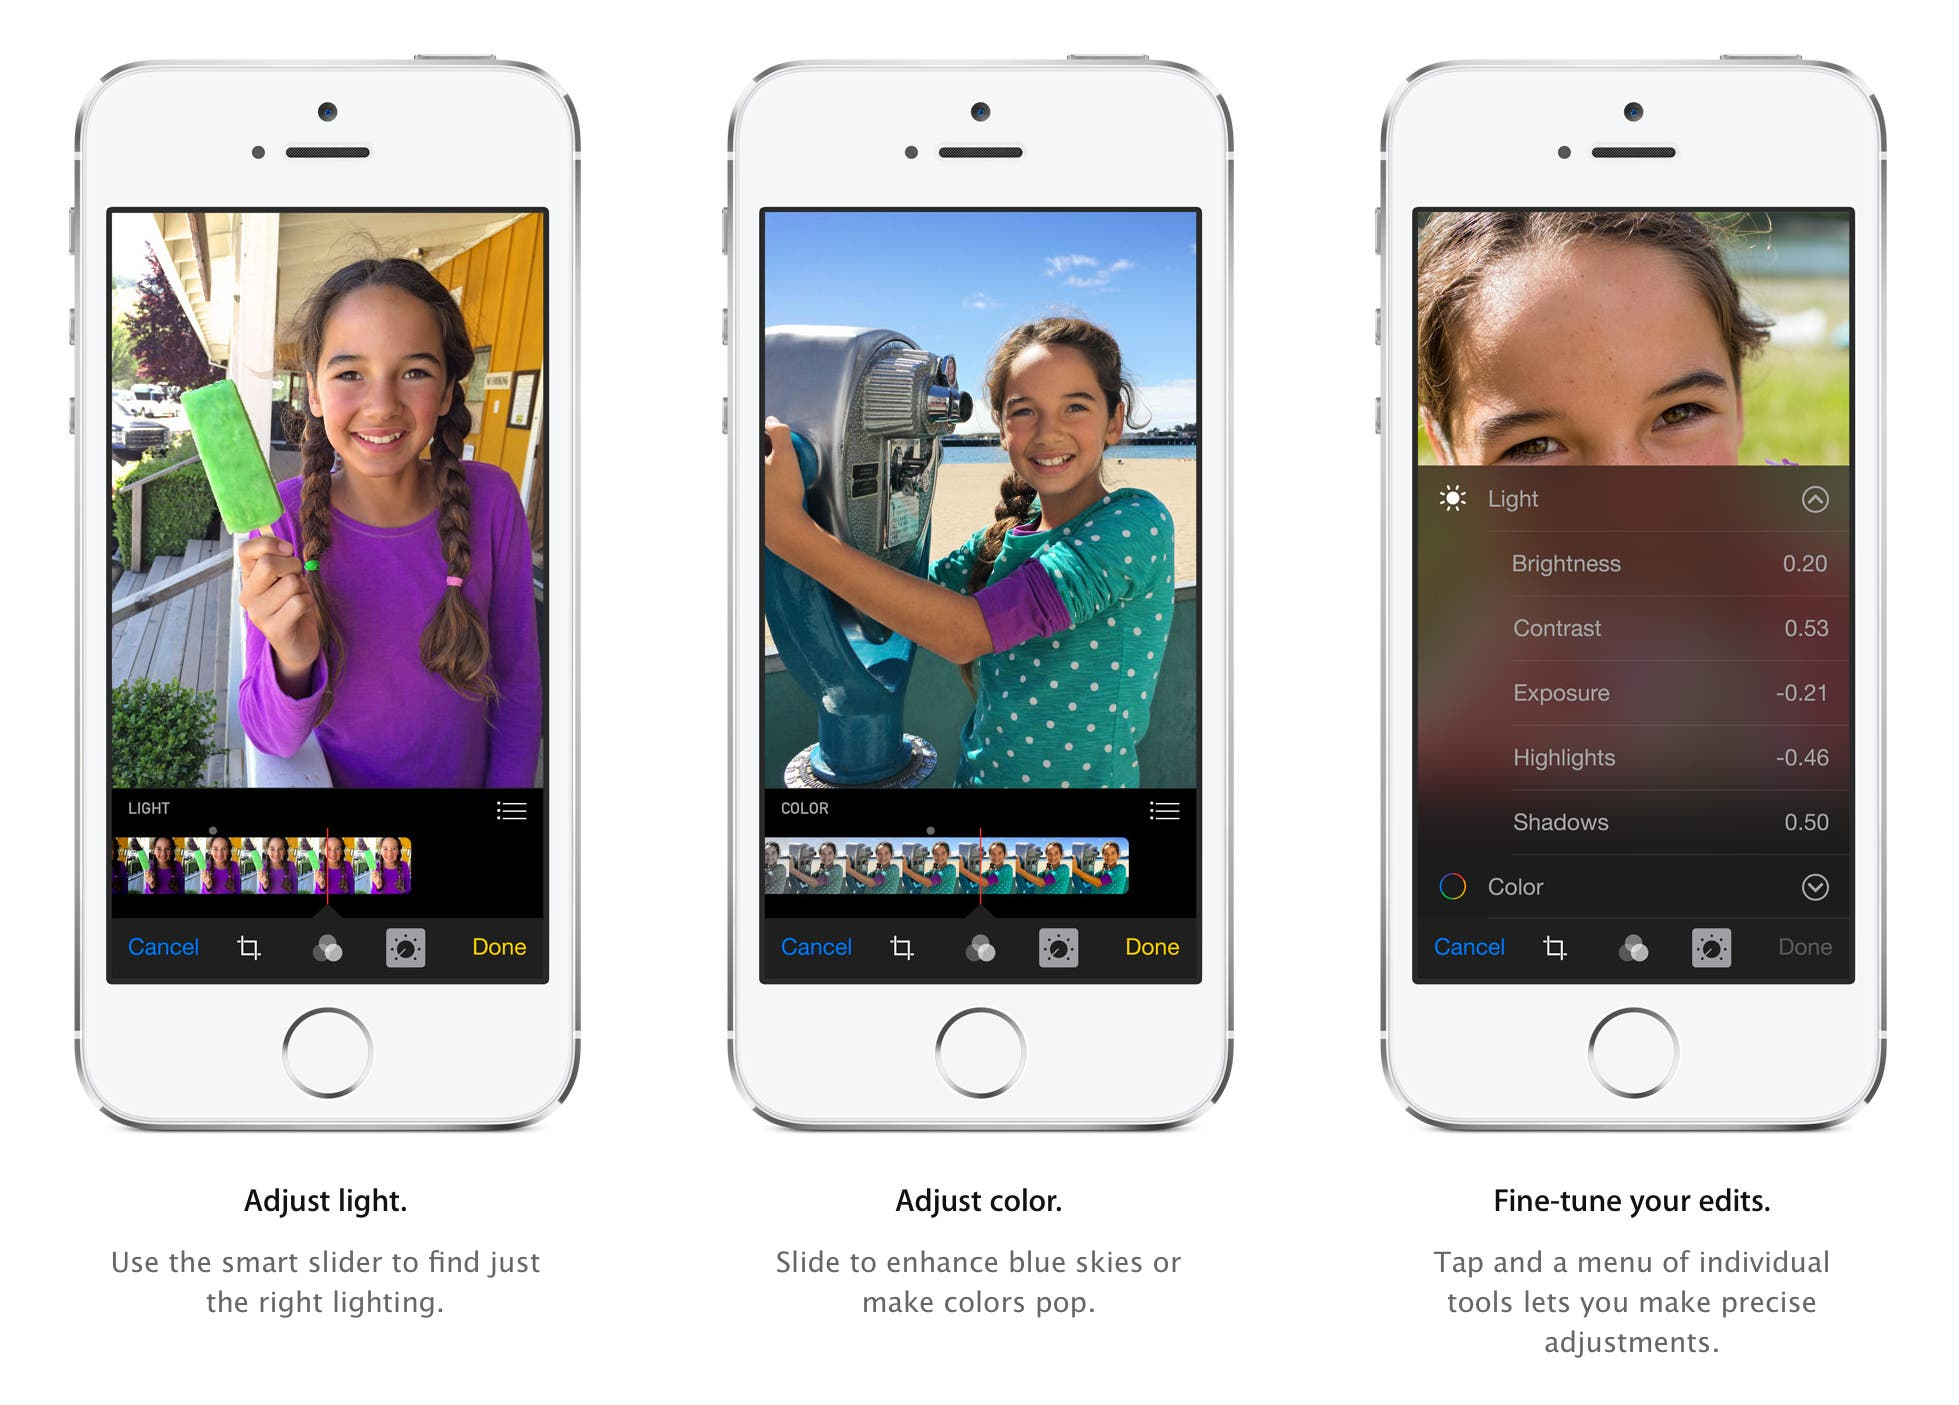 Apple Gets Serious About iPhoneography, Opens up iOS 8 to Manual Camera Controls and More